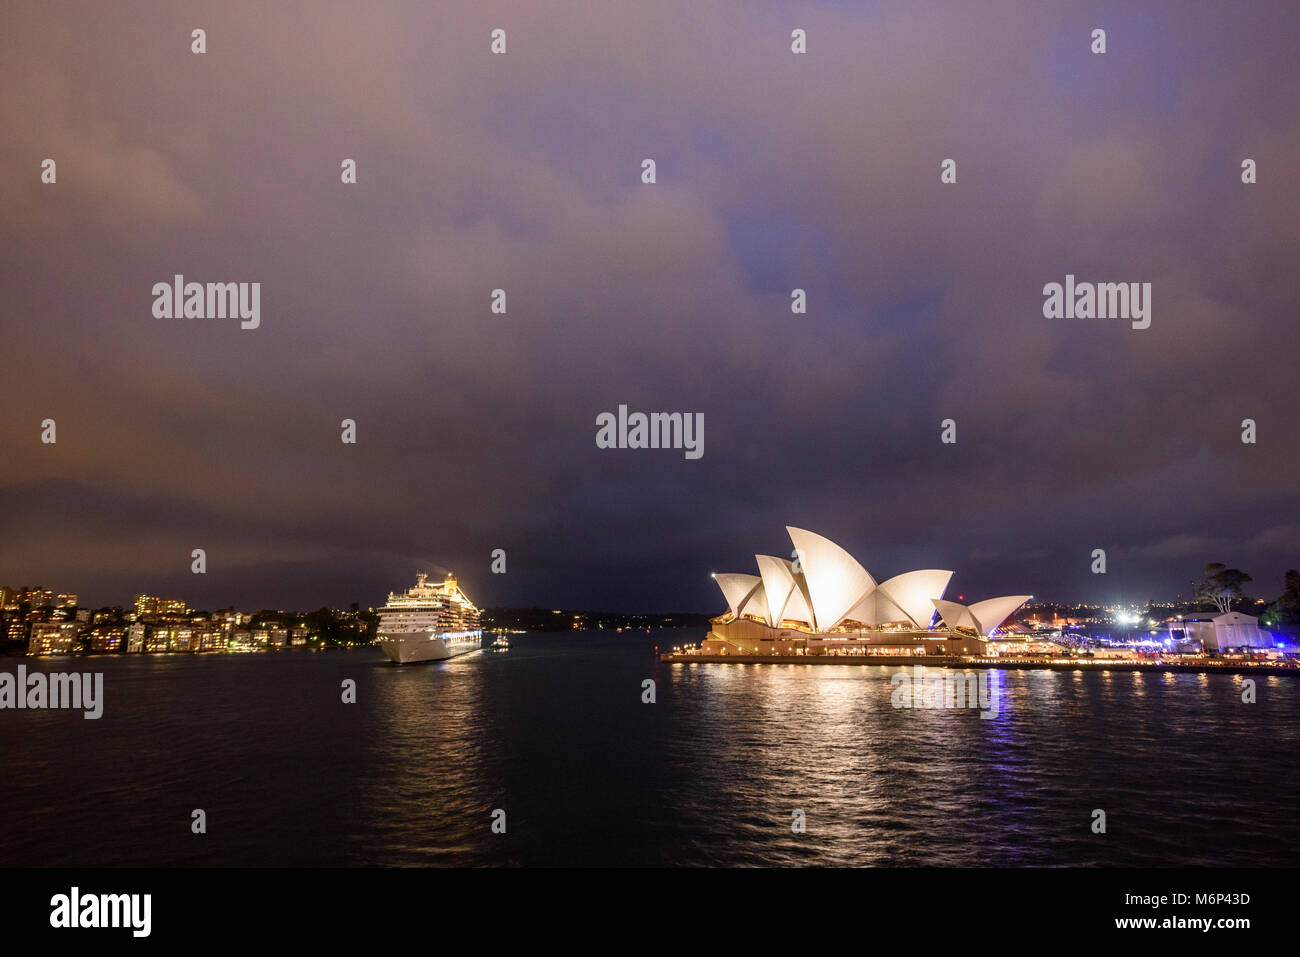 Sydney Harbour with illuminated cruise ship and Sydney Opera House at dusk under stormy sky. - Stock Image